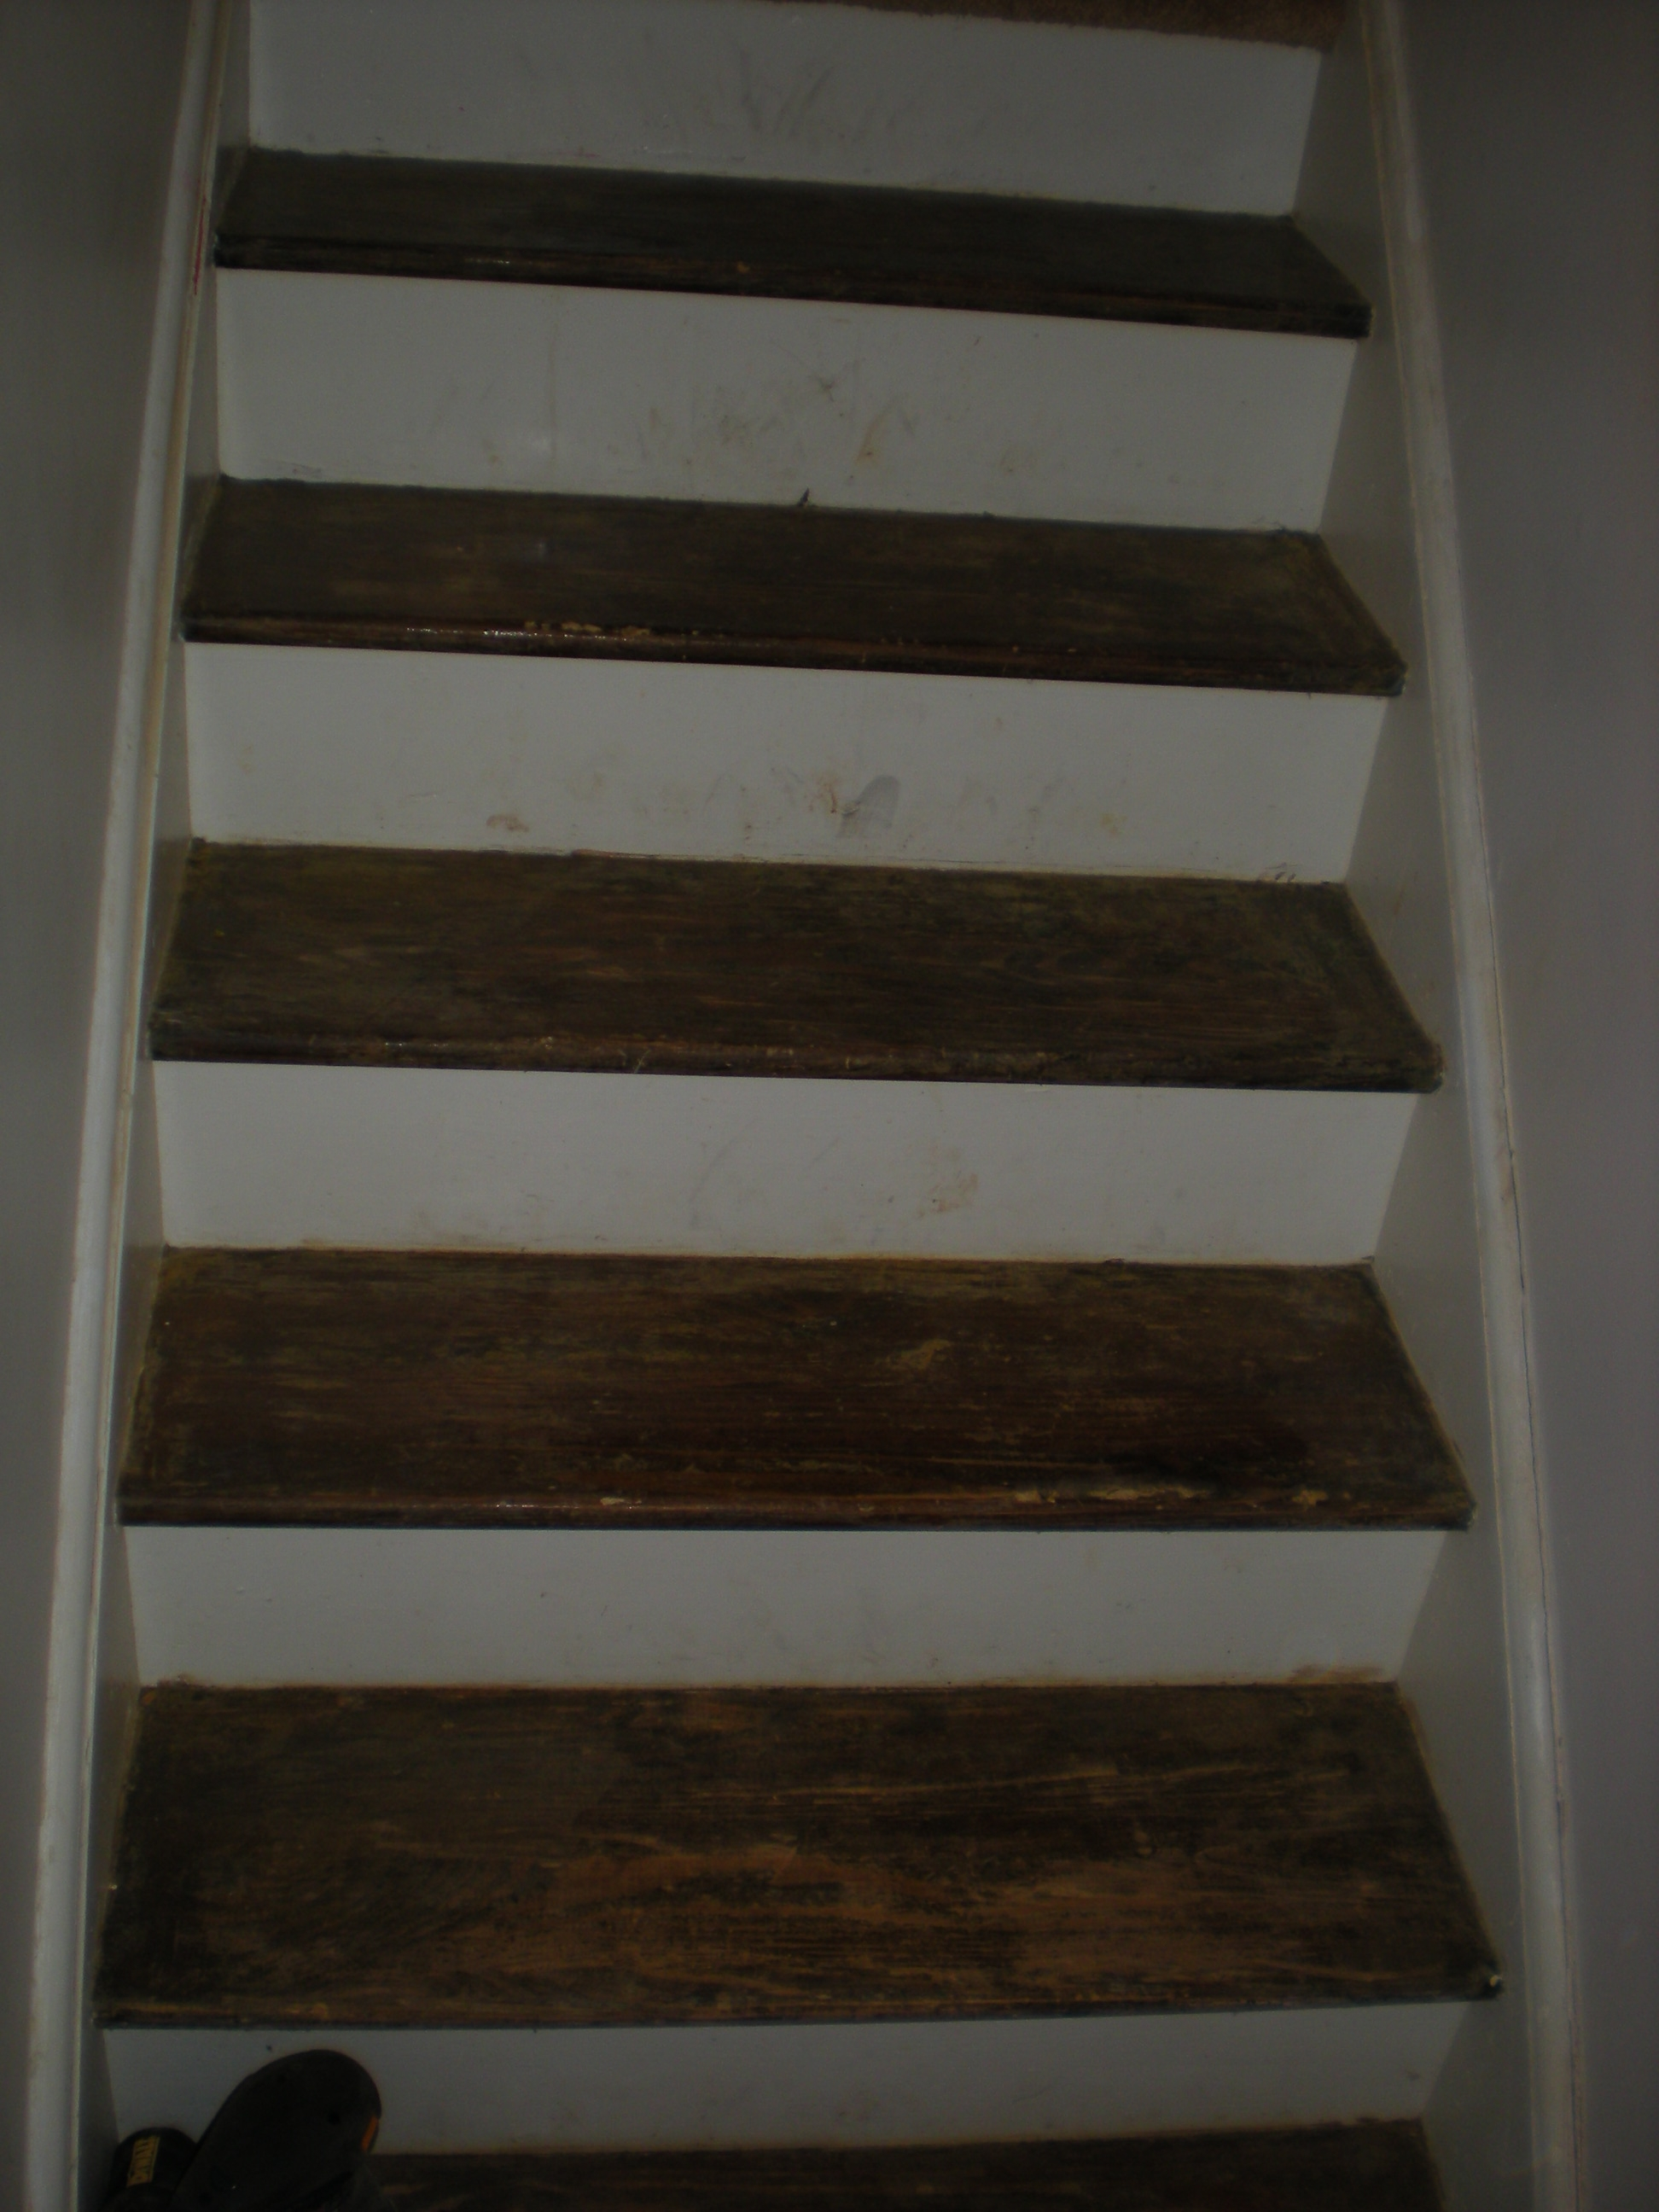 Refinishing An Hardwood Staircase 8 Steps With Pictures | Stripping Stairs Back To Wood | Paint Remover | Stair Risers | Stair Treads | Steps | Hardwood